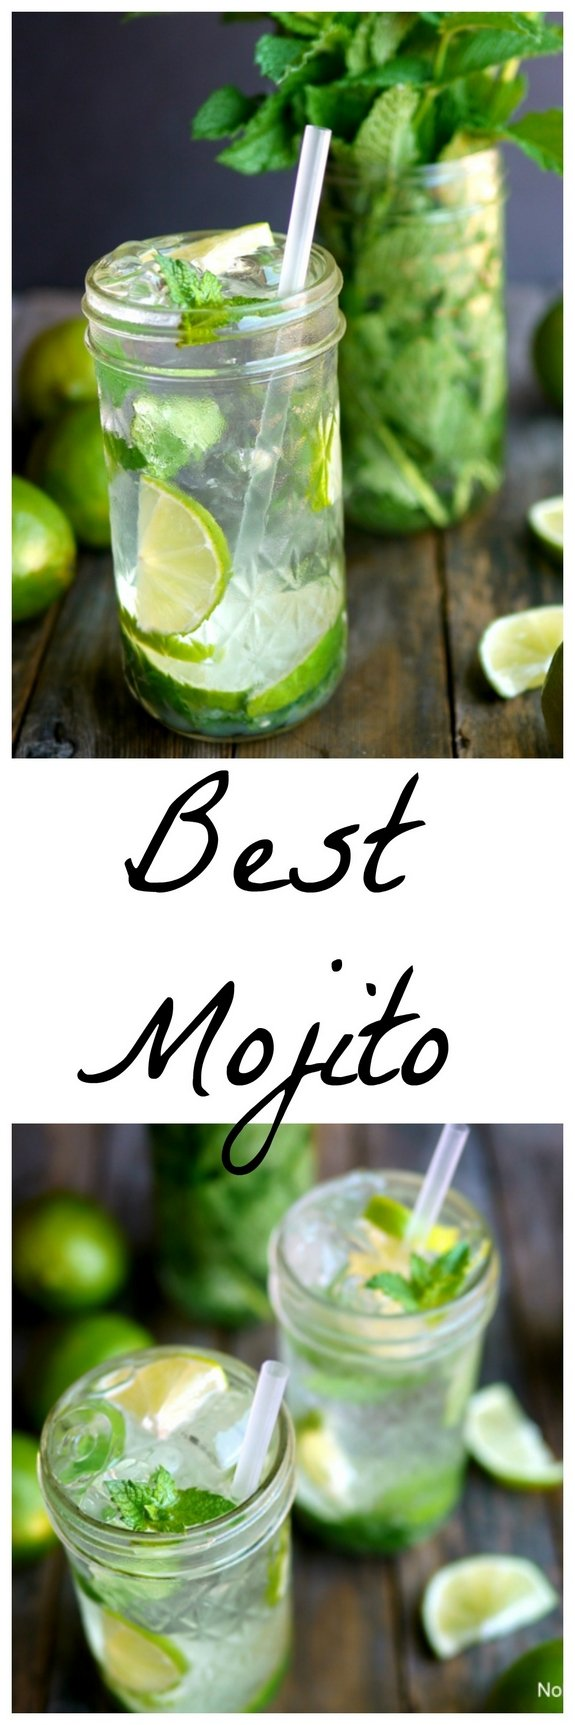 After extensive recipe testing THIS is The Best Mojito